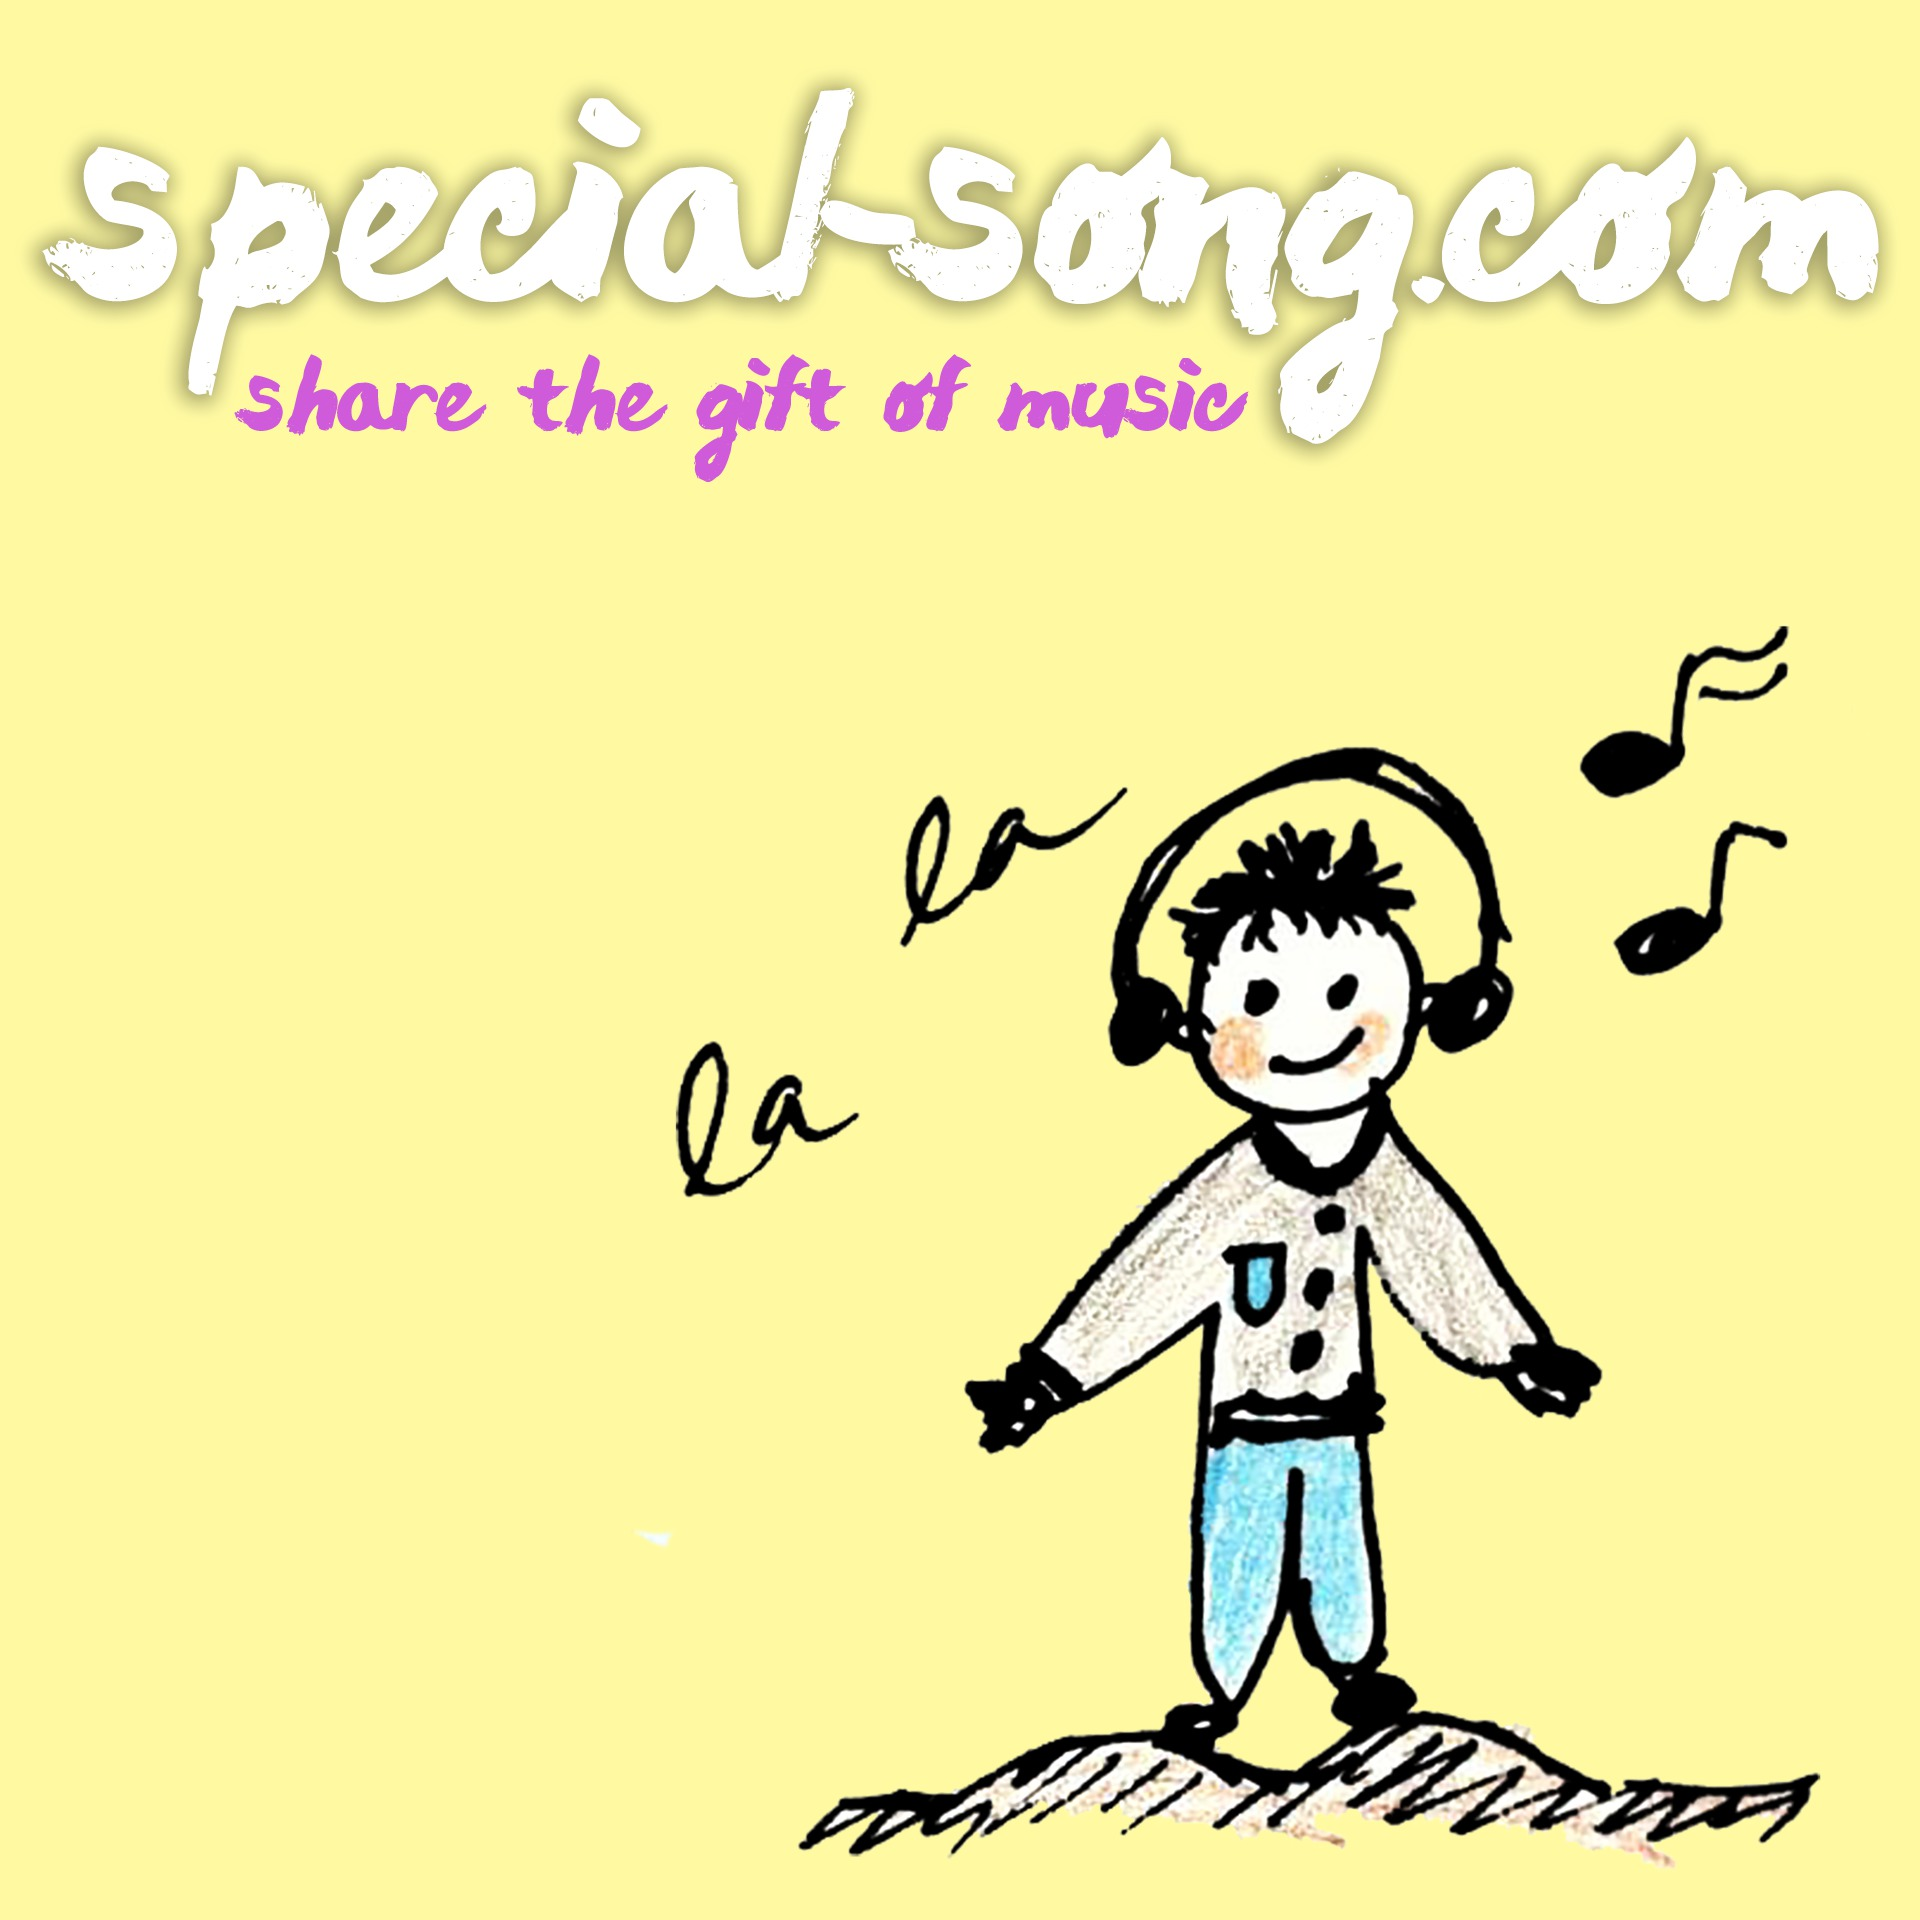 Special-Song.com - words, music and vocals by Arron Storey